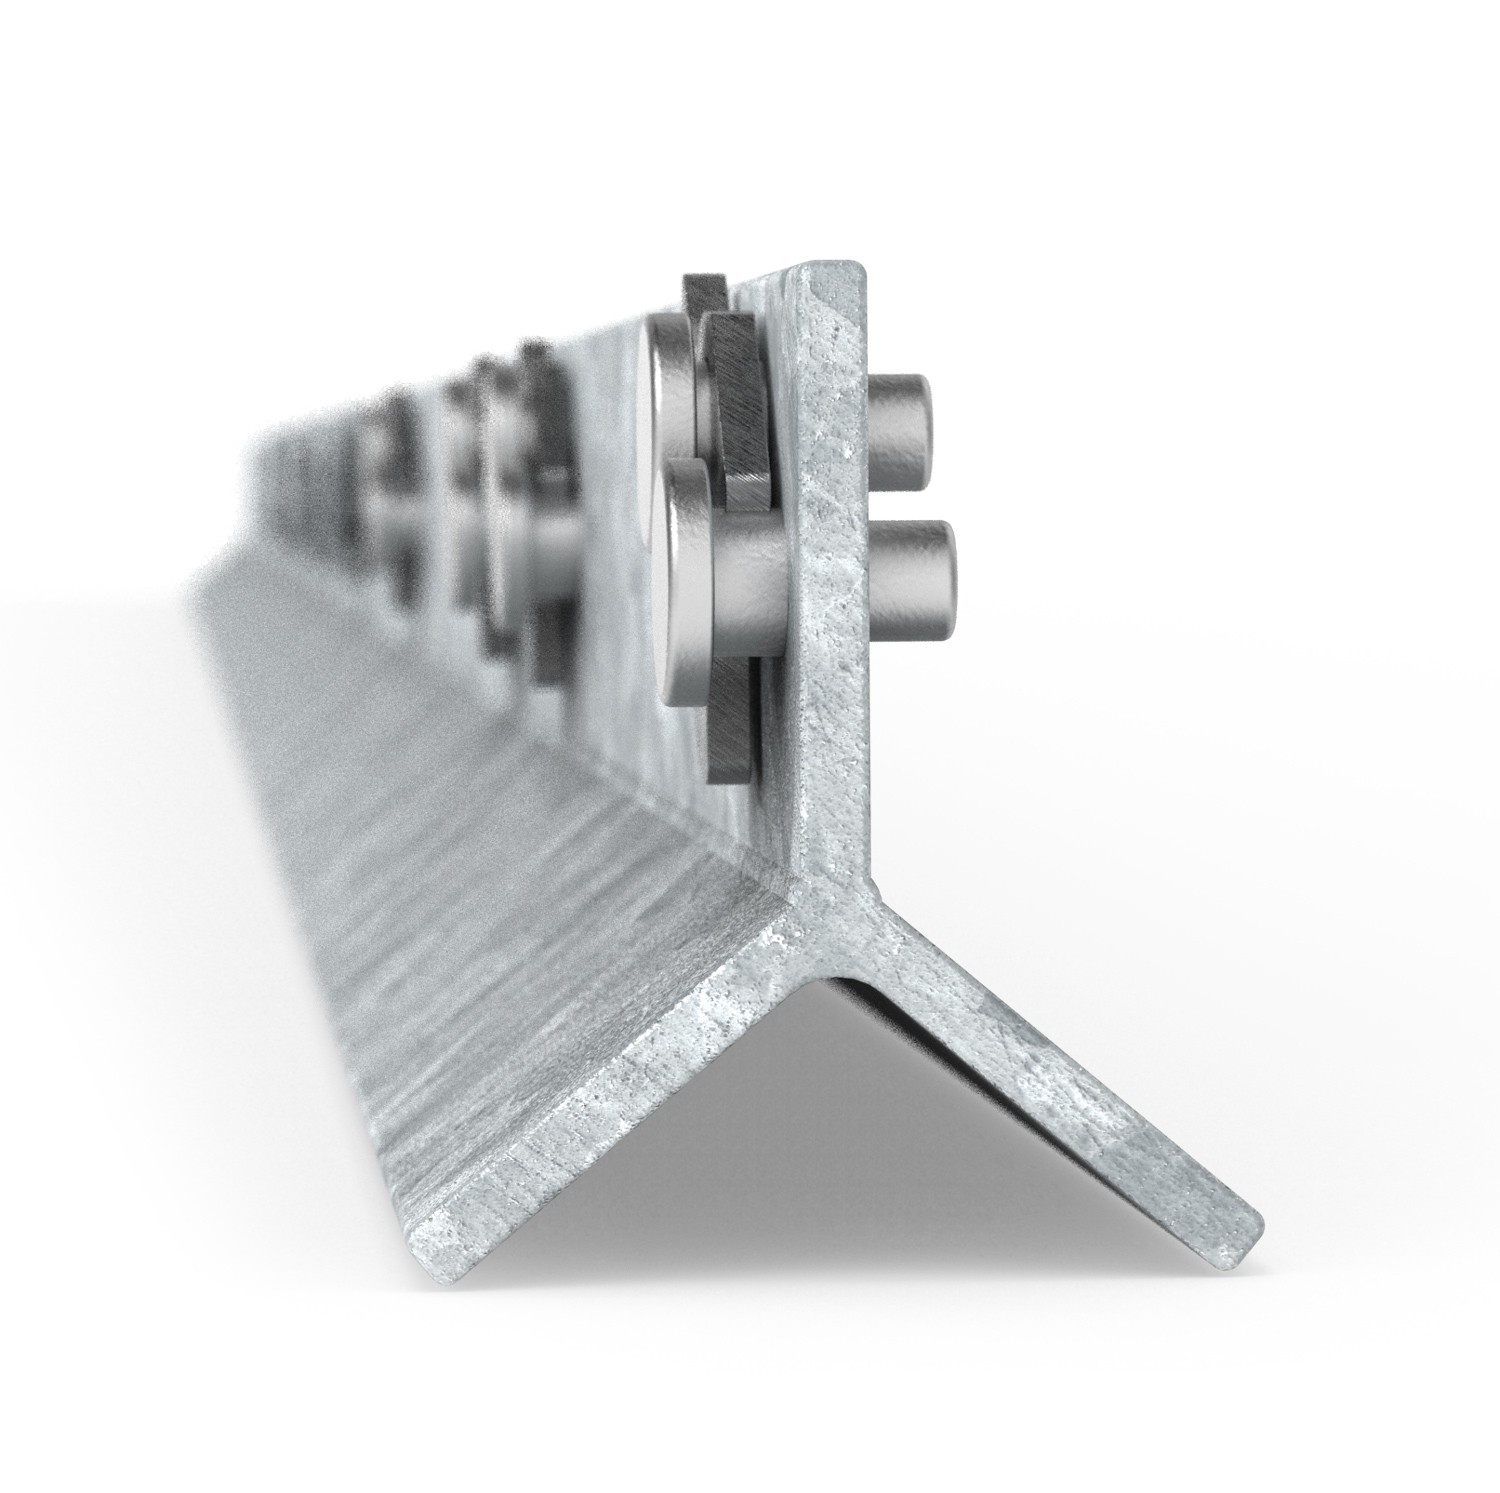 Clipex Standard Fence Post